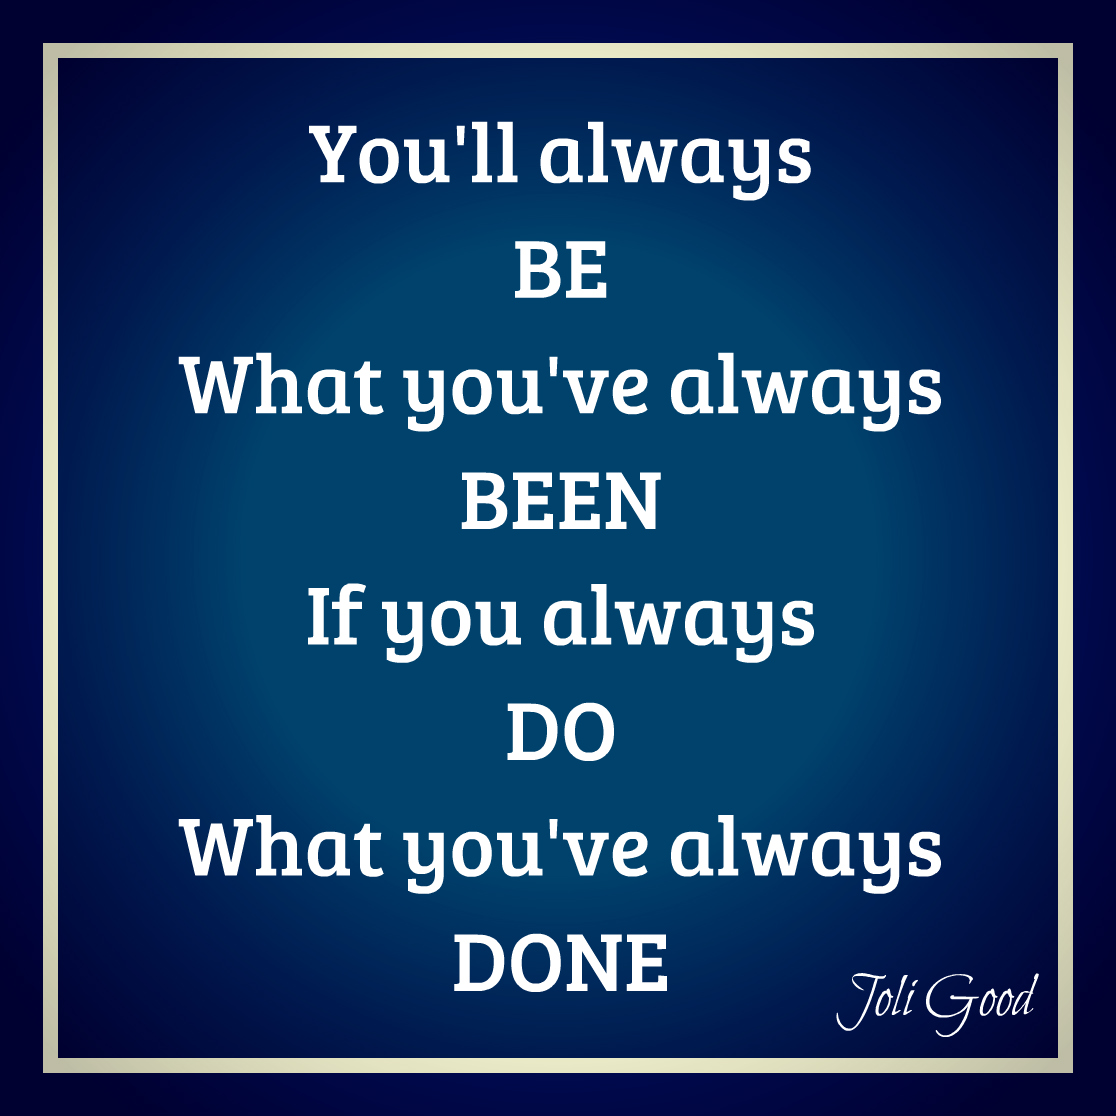 You Always You Always Always Been Will Be If You What Where Done Always Youve Do Have